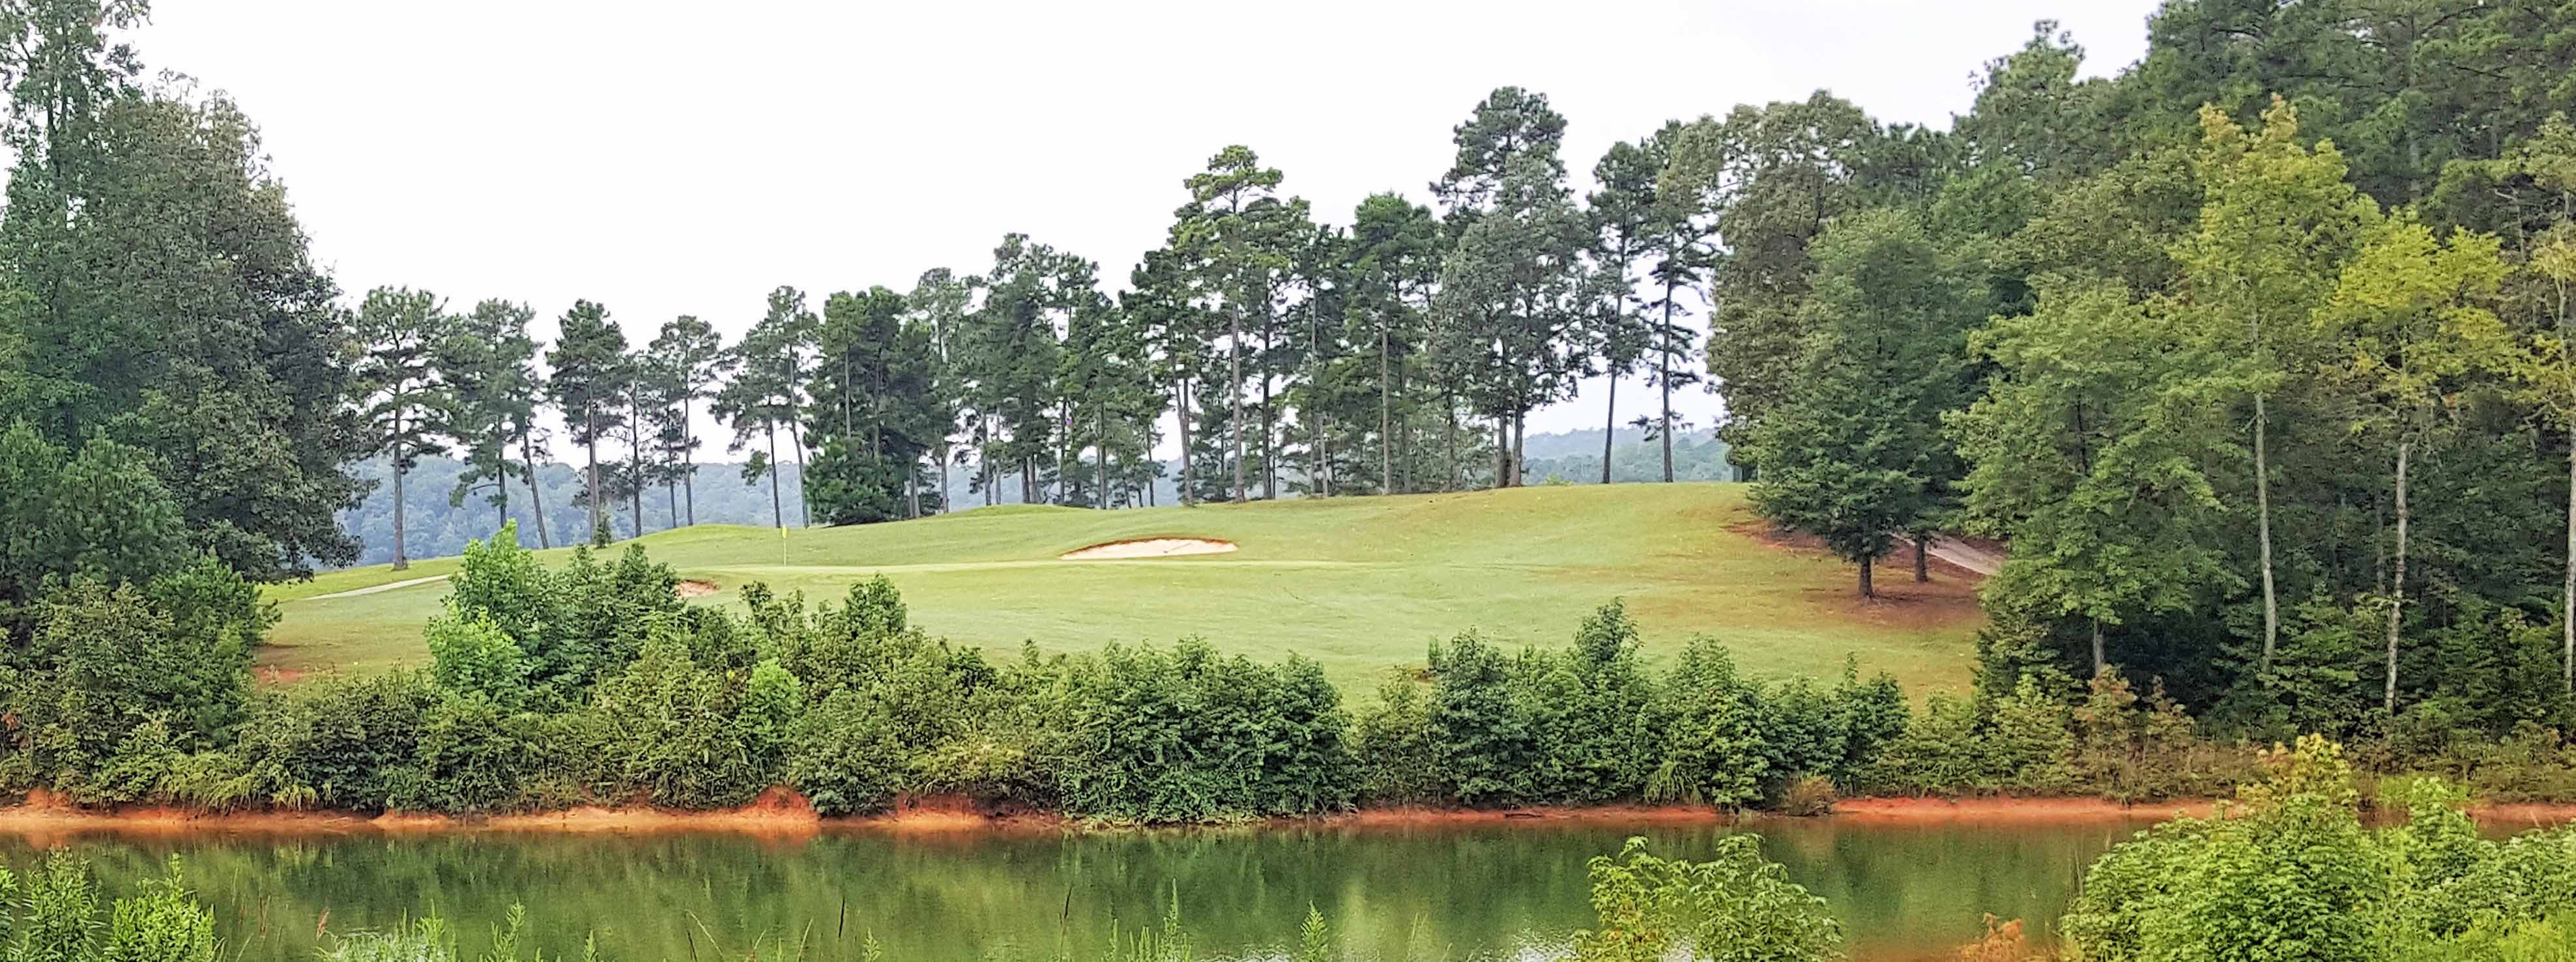 Arrowhead Pointe Golf Club -13th Green